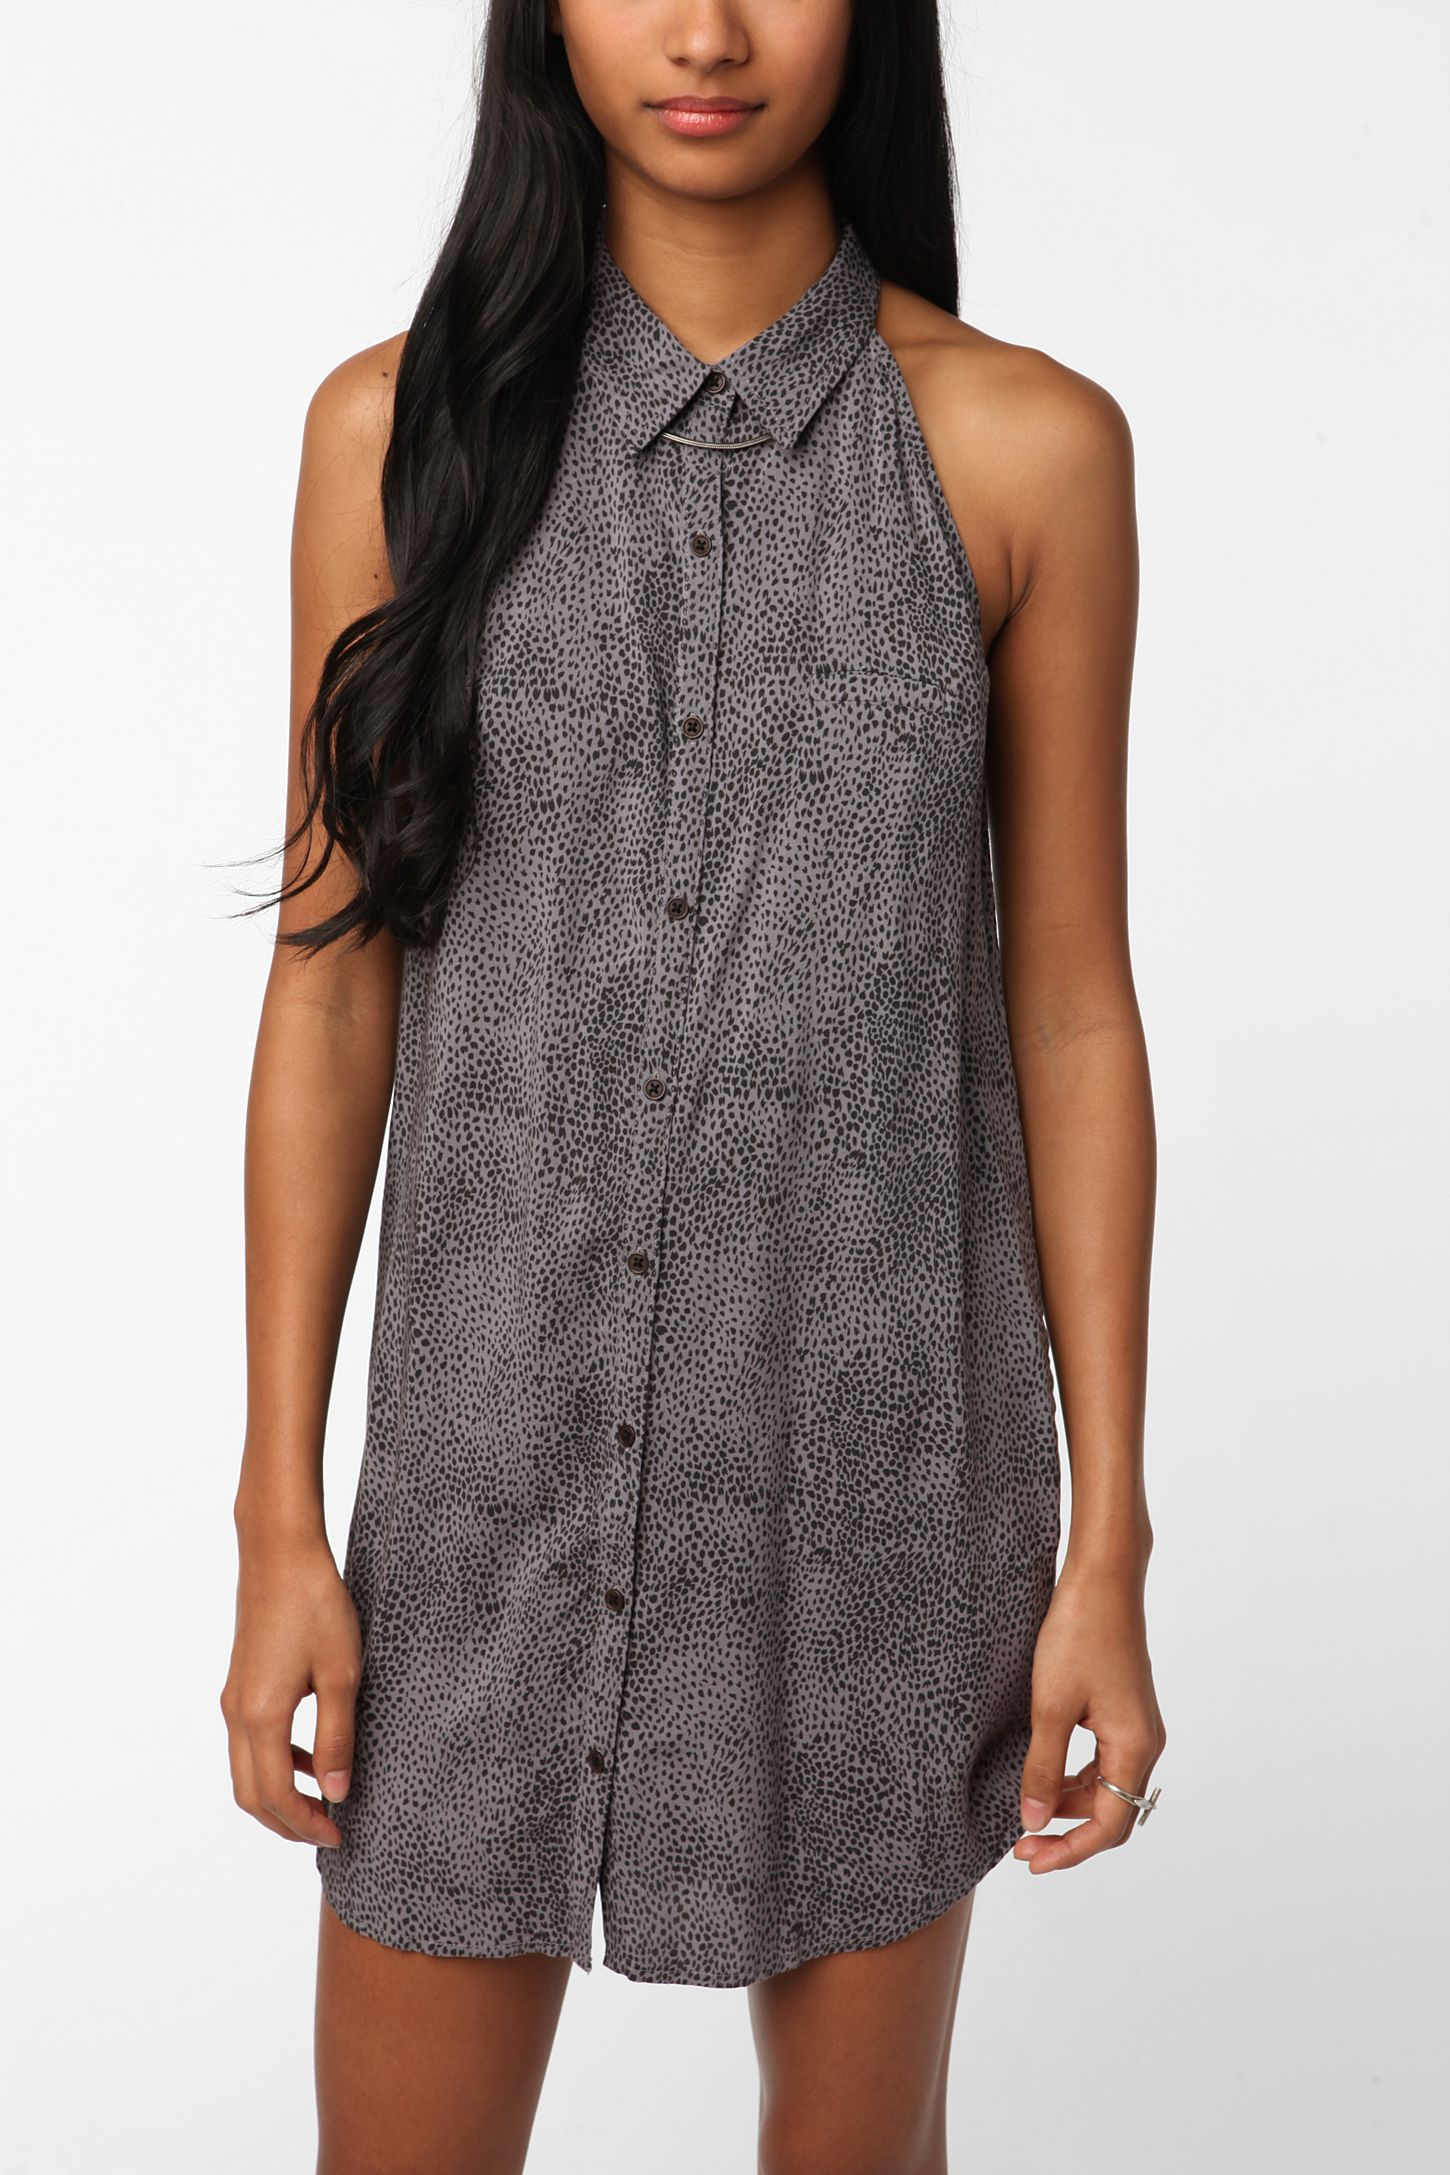 373dff75456ef Urban Outfitters Gray Shirt Dress - DREAMWORKS